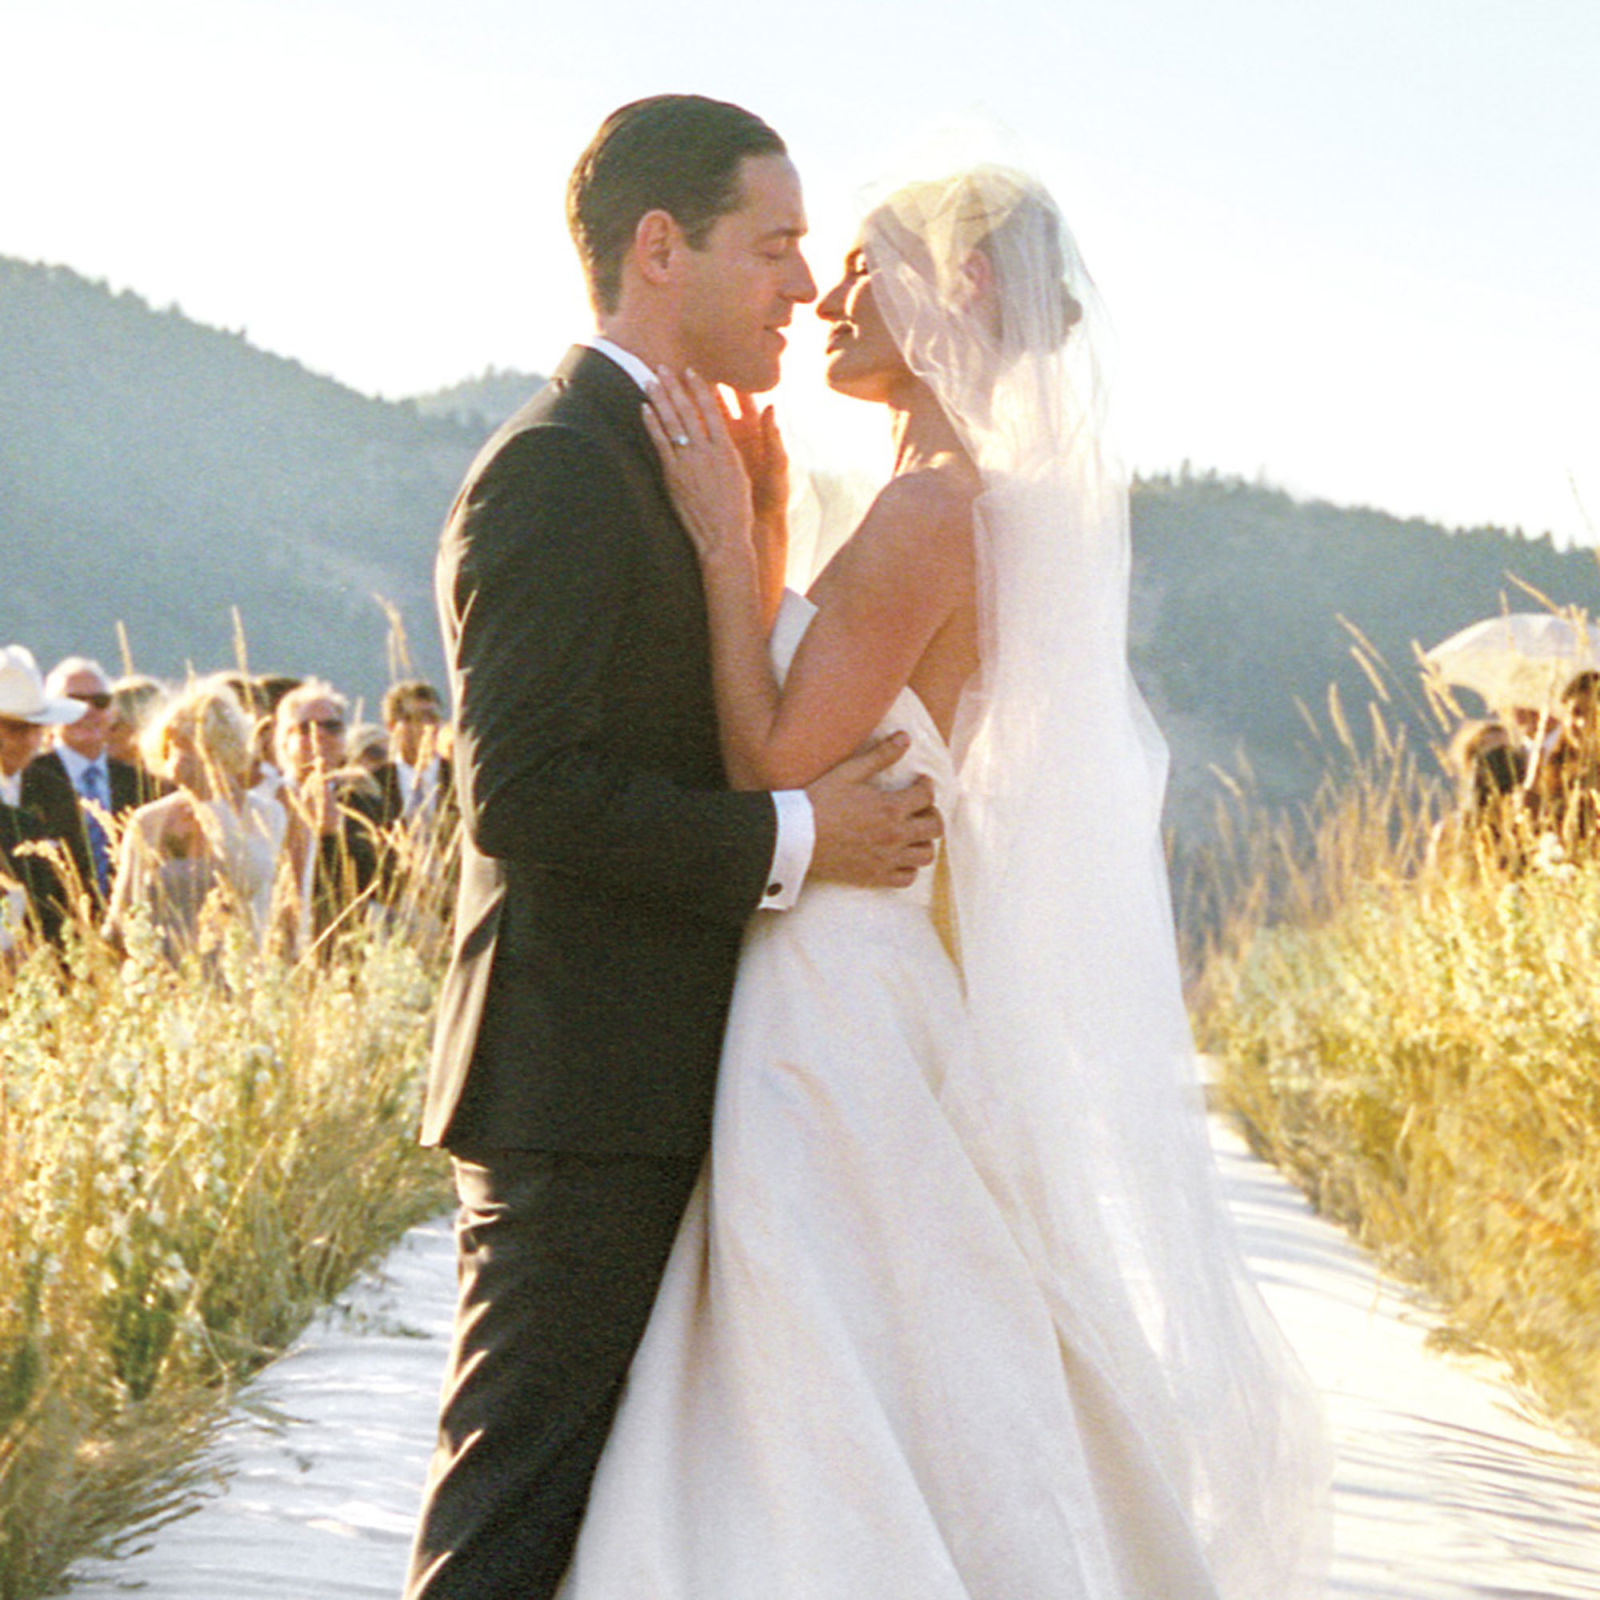 Kate Bosworth Wedding Photos - Kate Bosworth Oscar de la ...